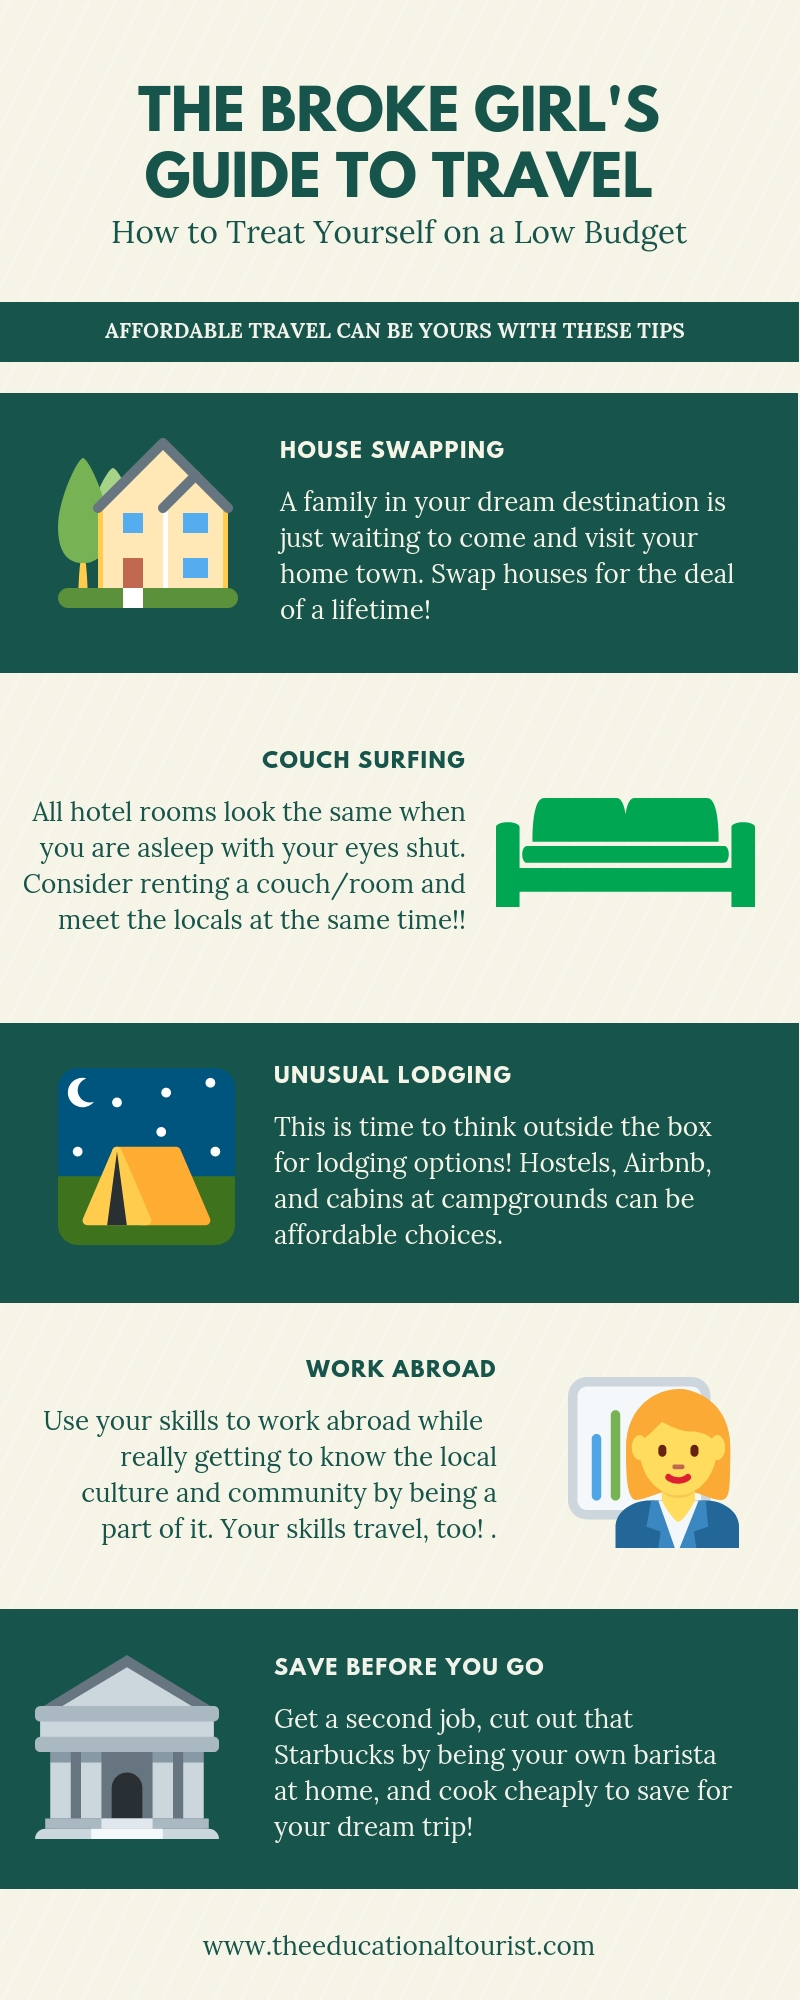 info graphic on how to save money for travel